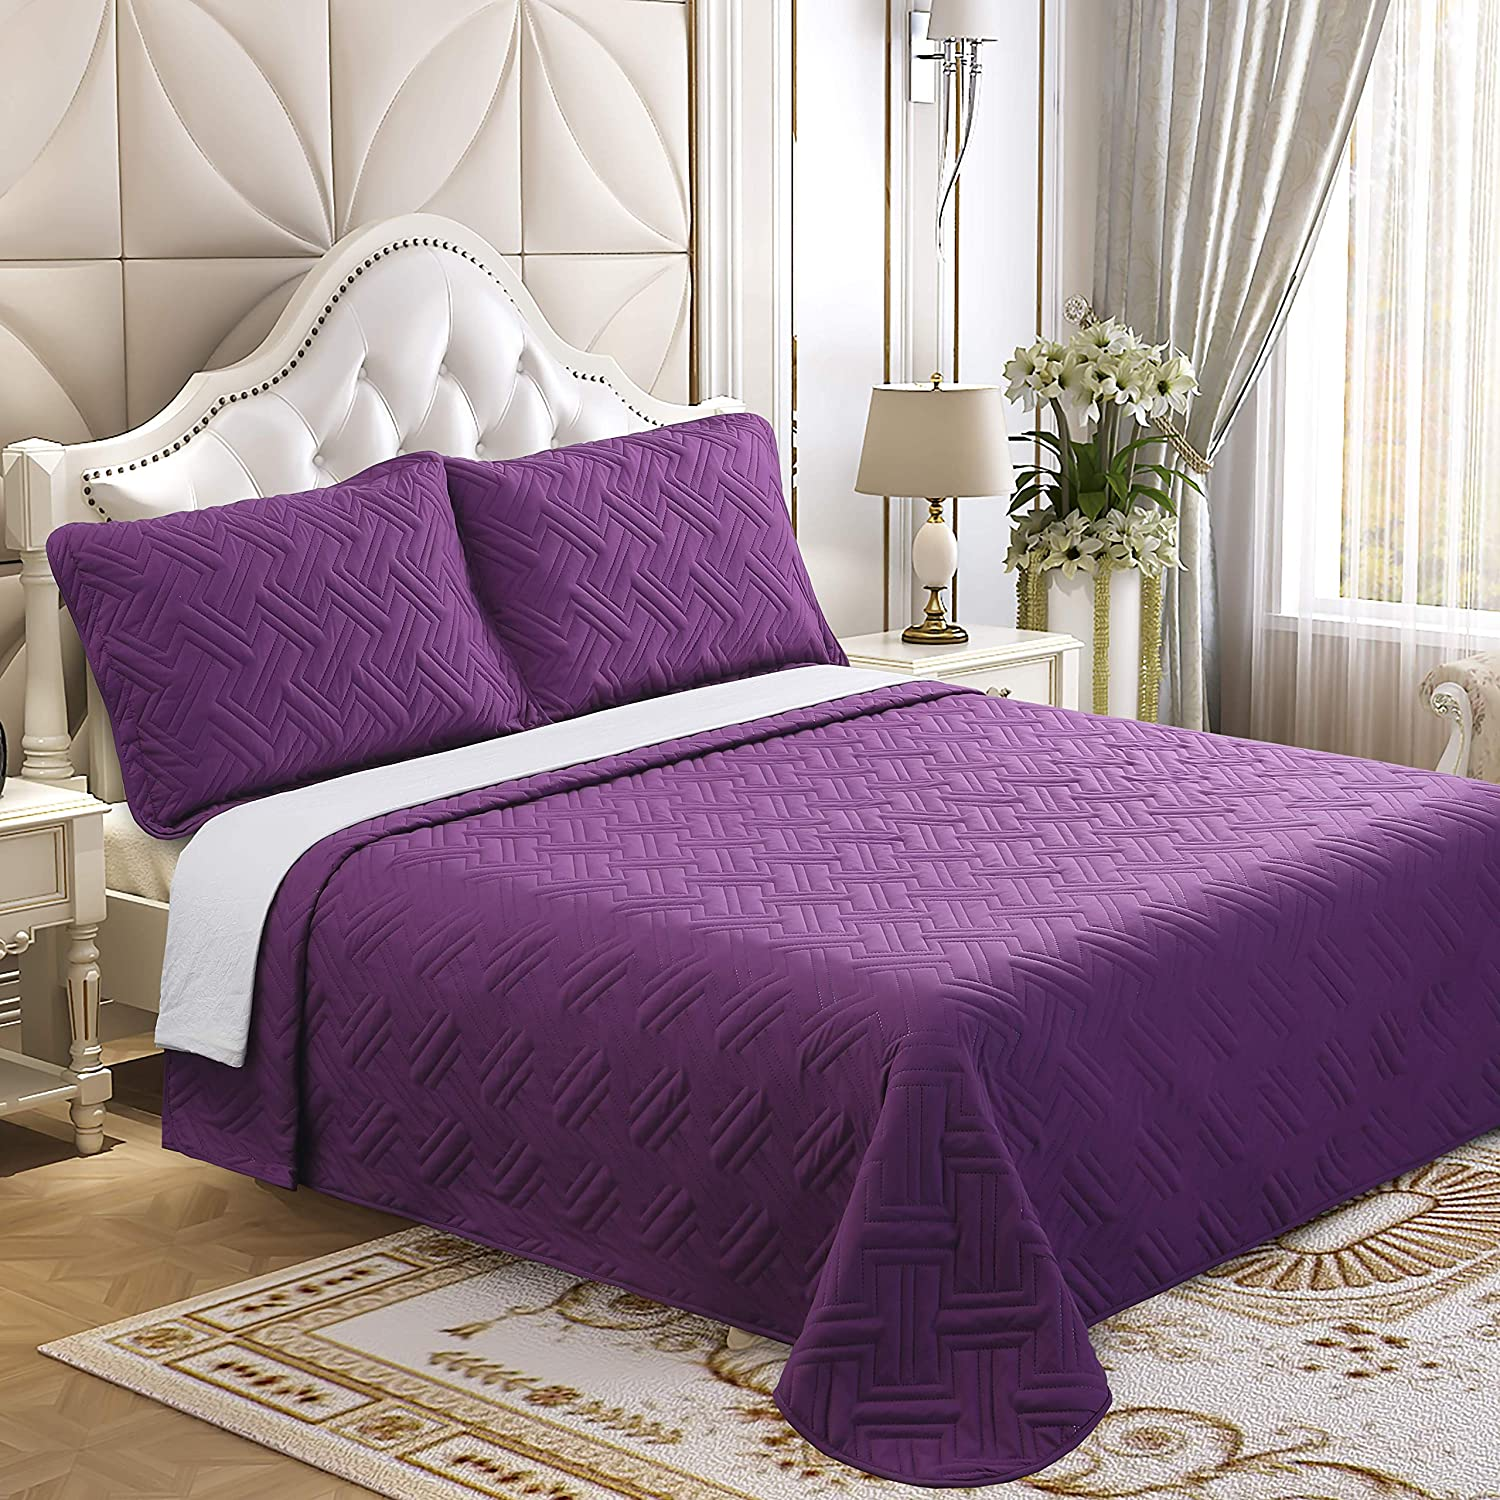 Lorient Home Embroidered Quilt Microfiber Oversized Twin Quilt Soft as Cotton